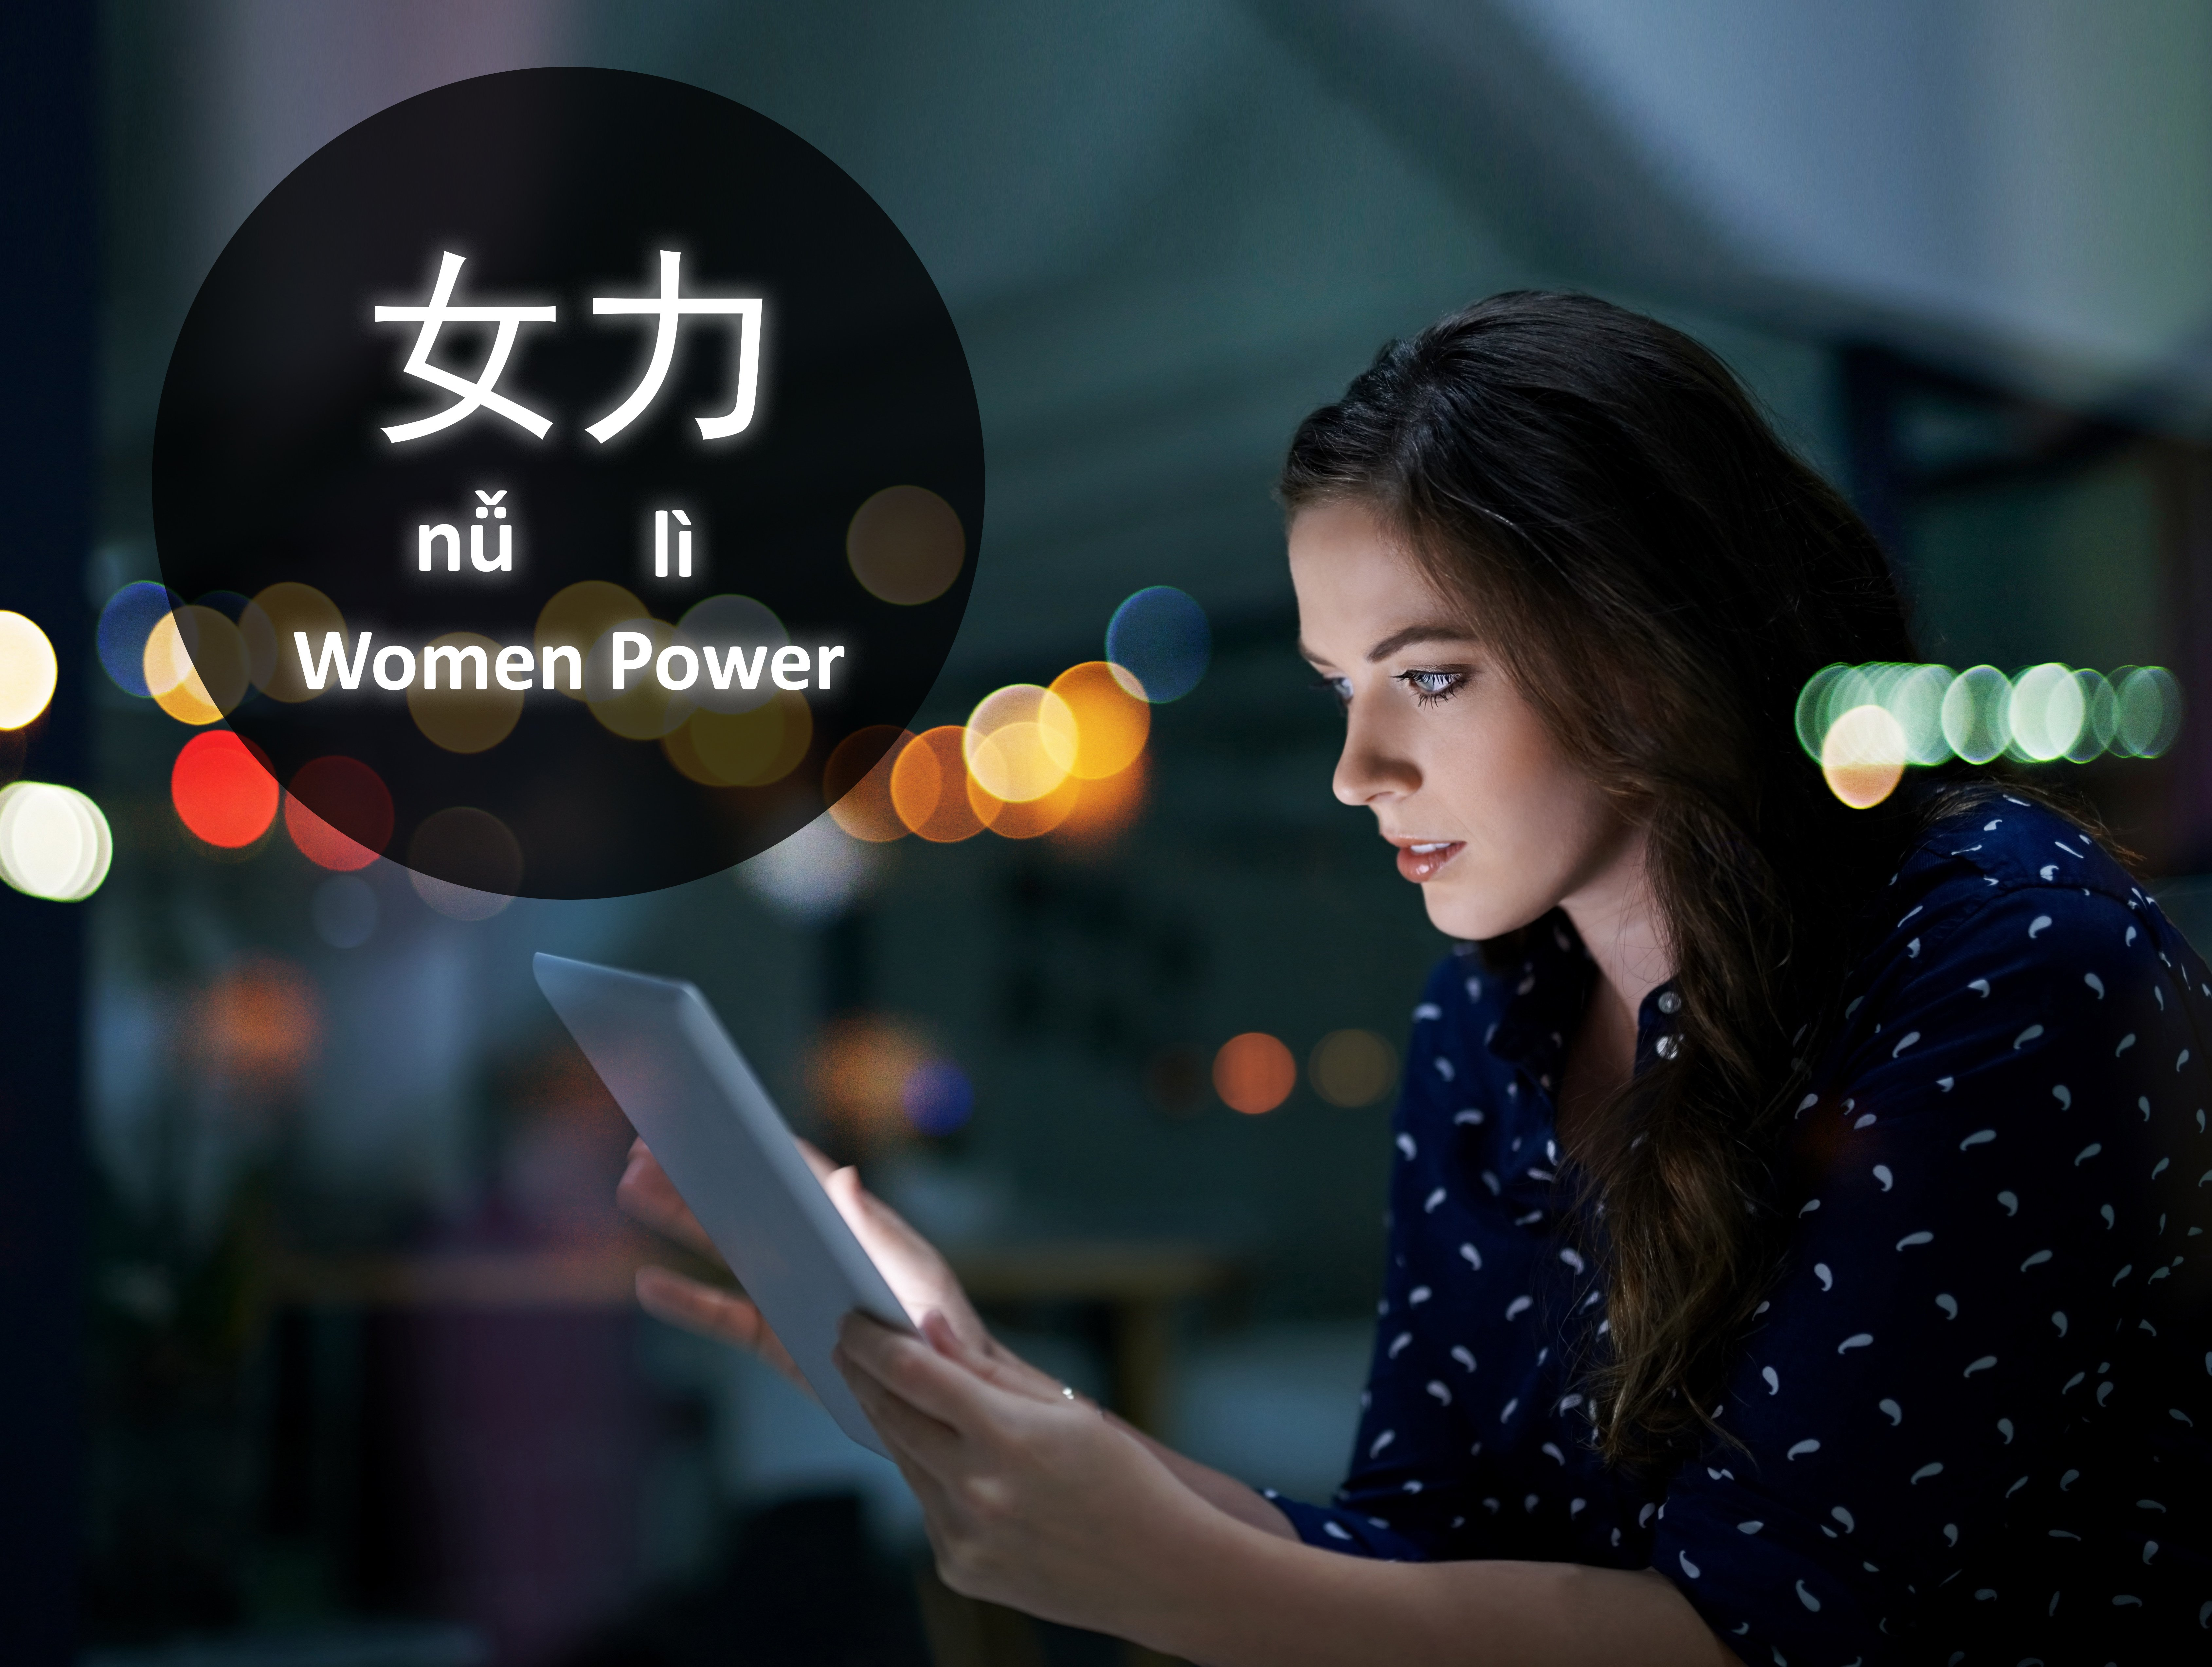 Women Power always learn second language to broaden horizon